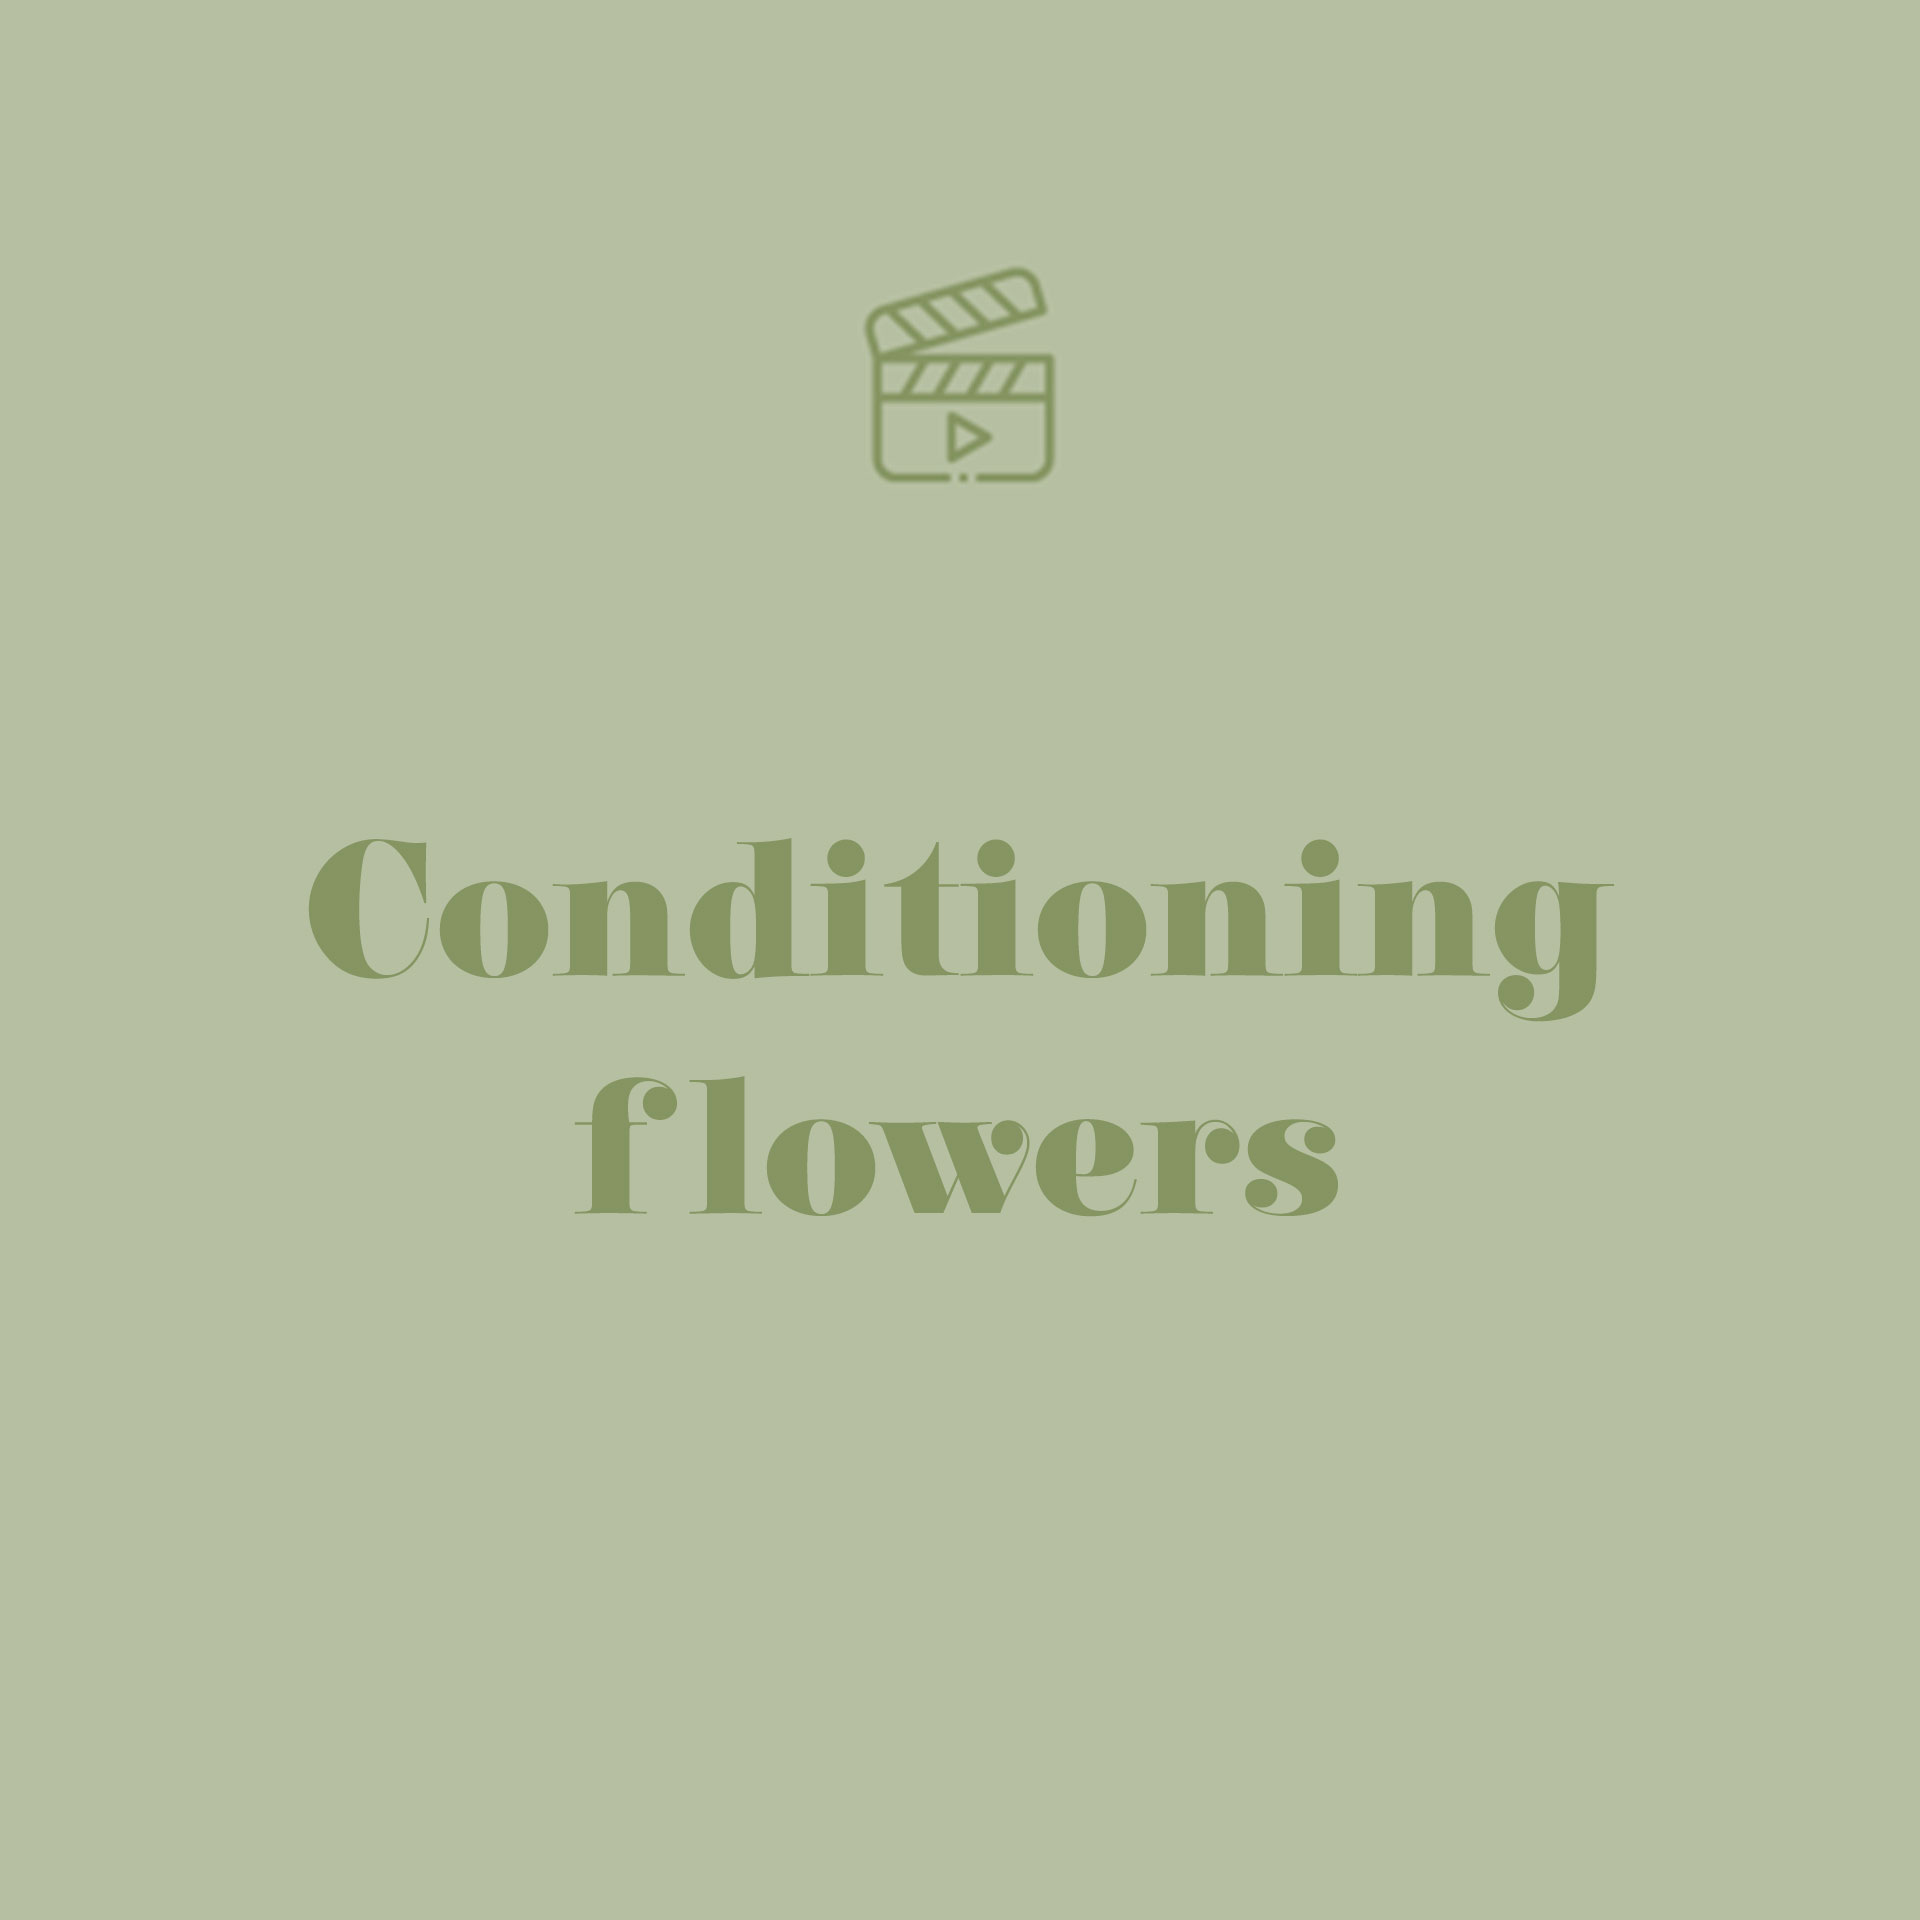 MemberThumbnail-ConditioningFlowers.jpg